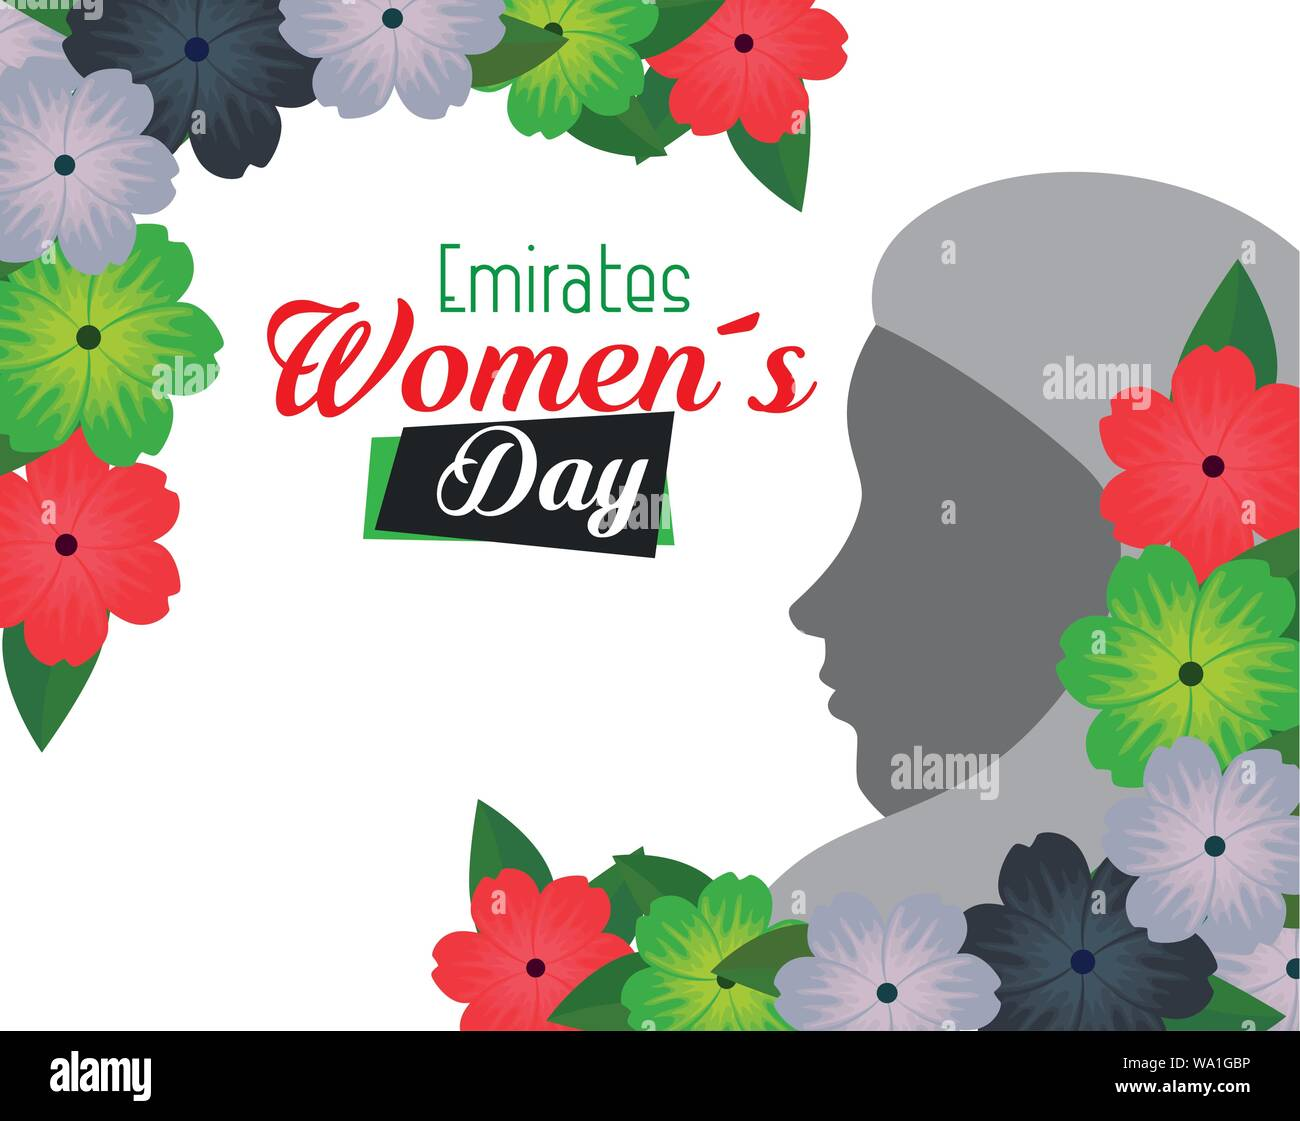 woman silhouette with flowers and leaves design Stock Vector